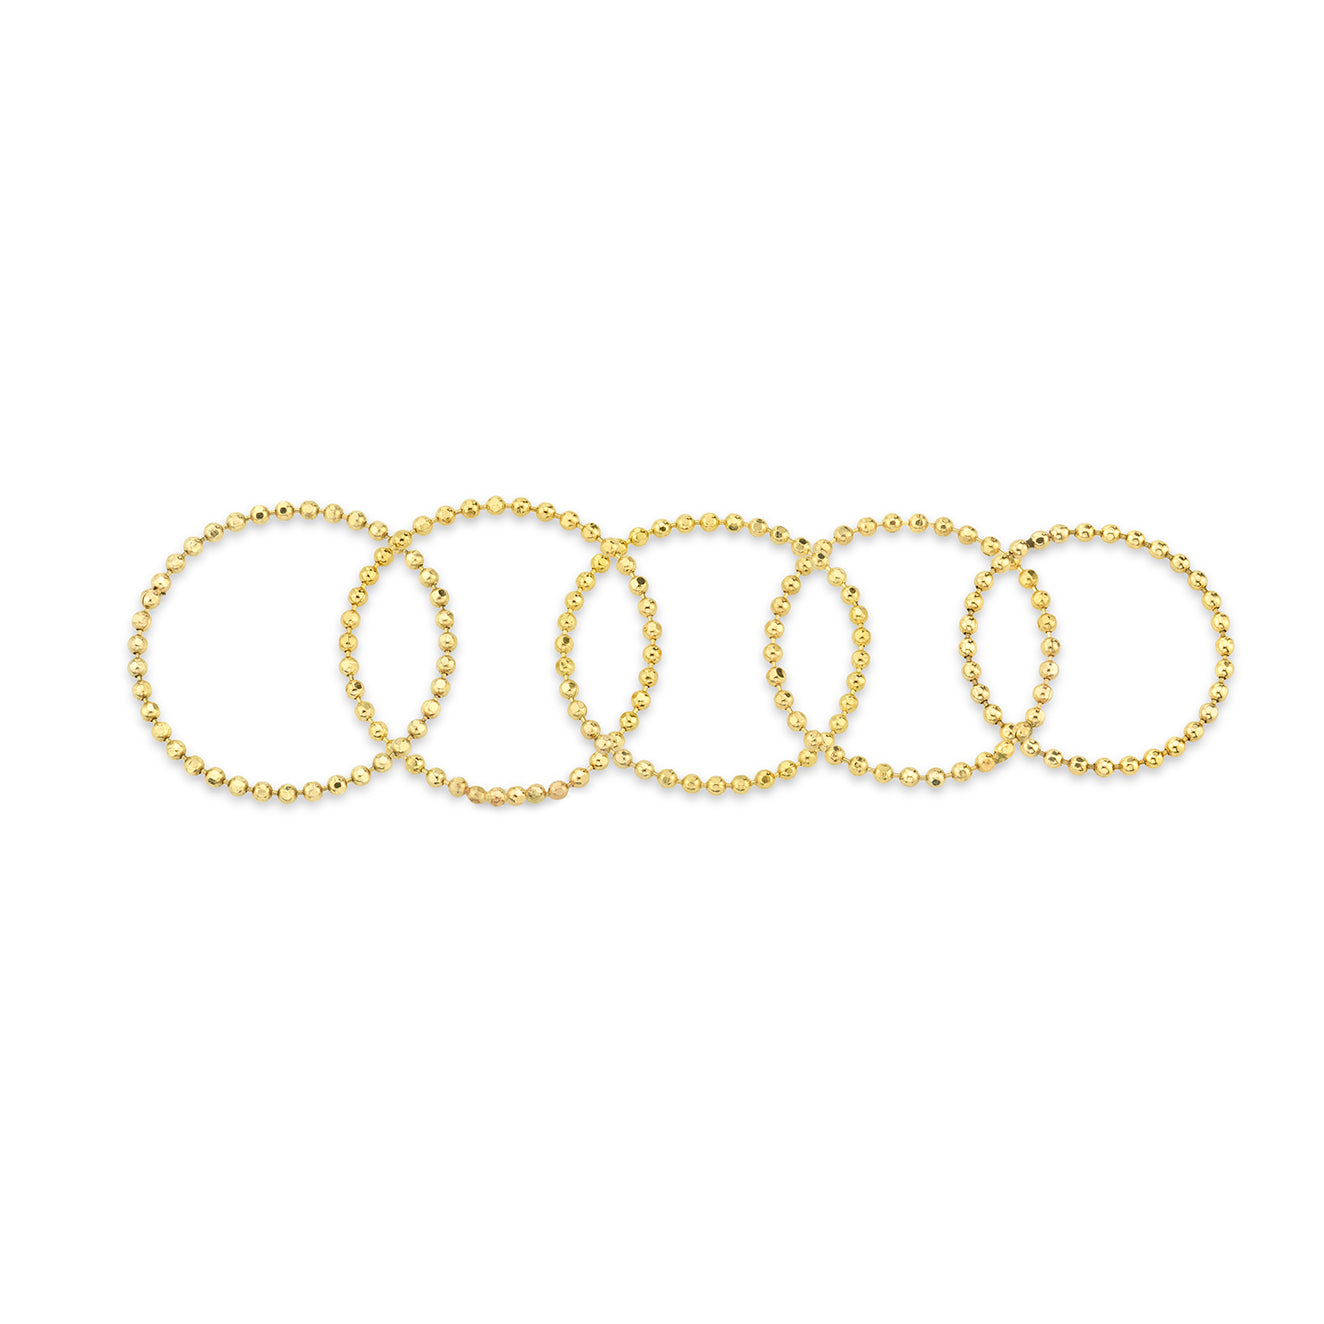 Set of 5 Soft Ball Chain Rings - Gabriela Artigas